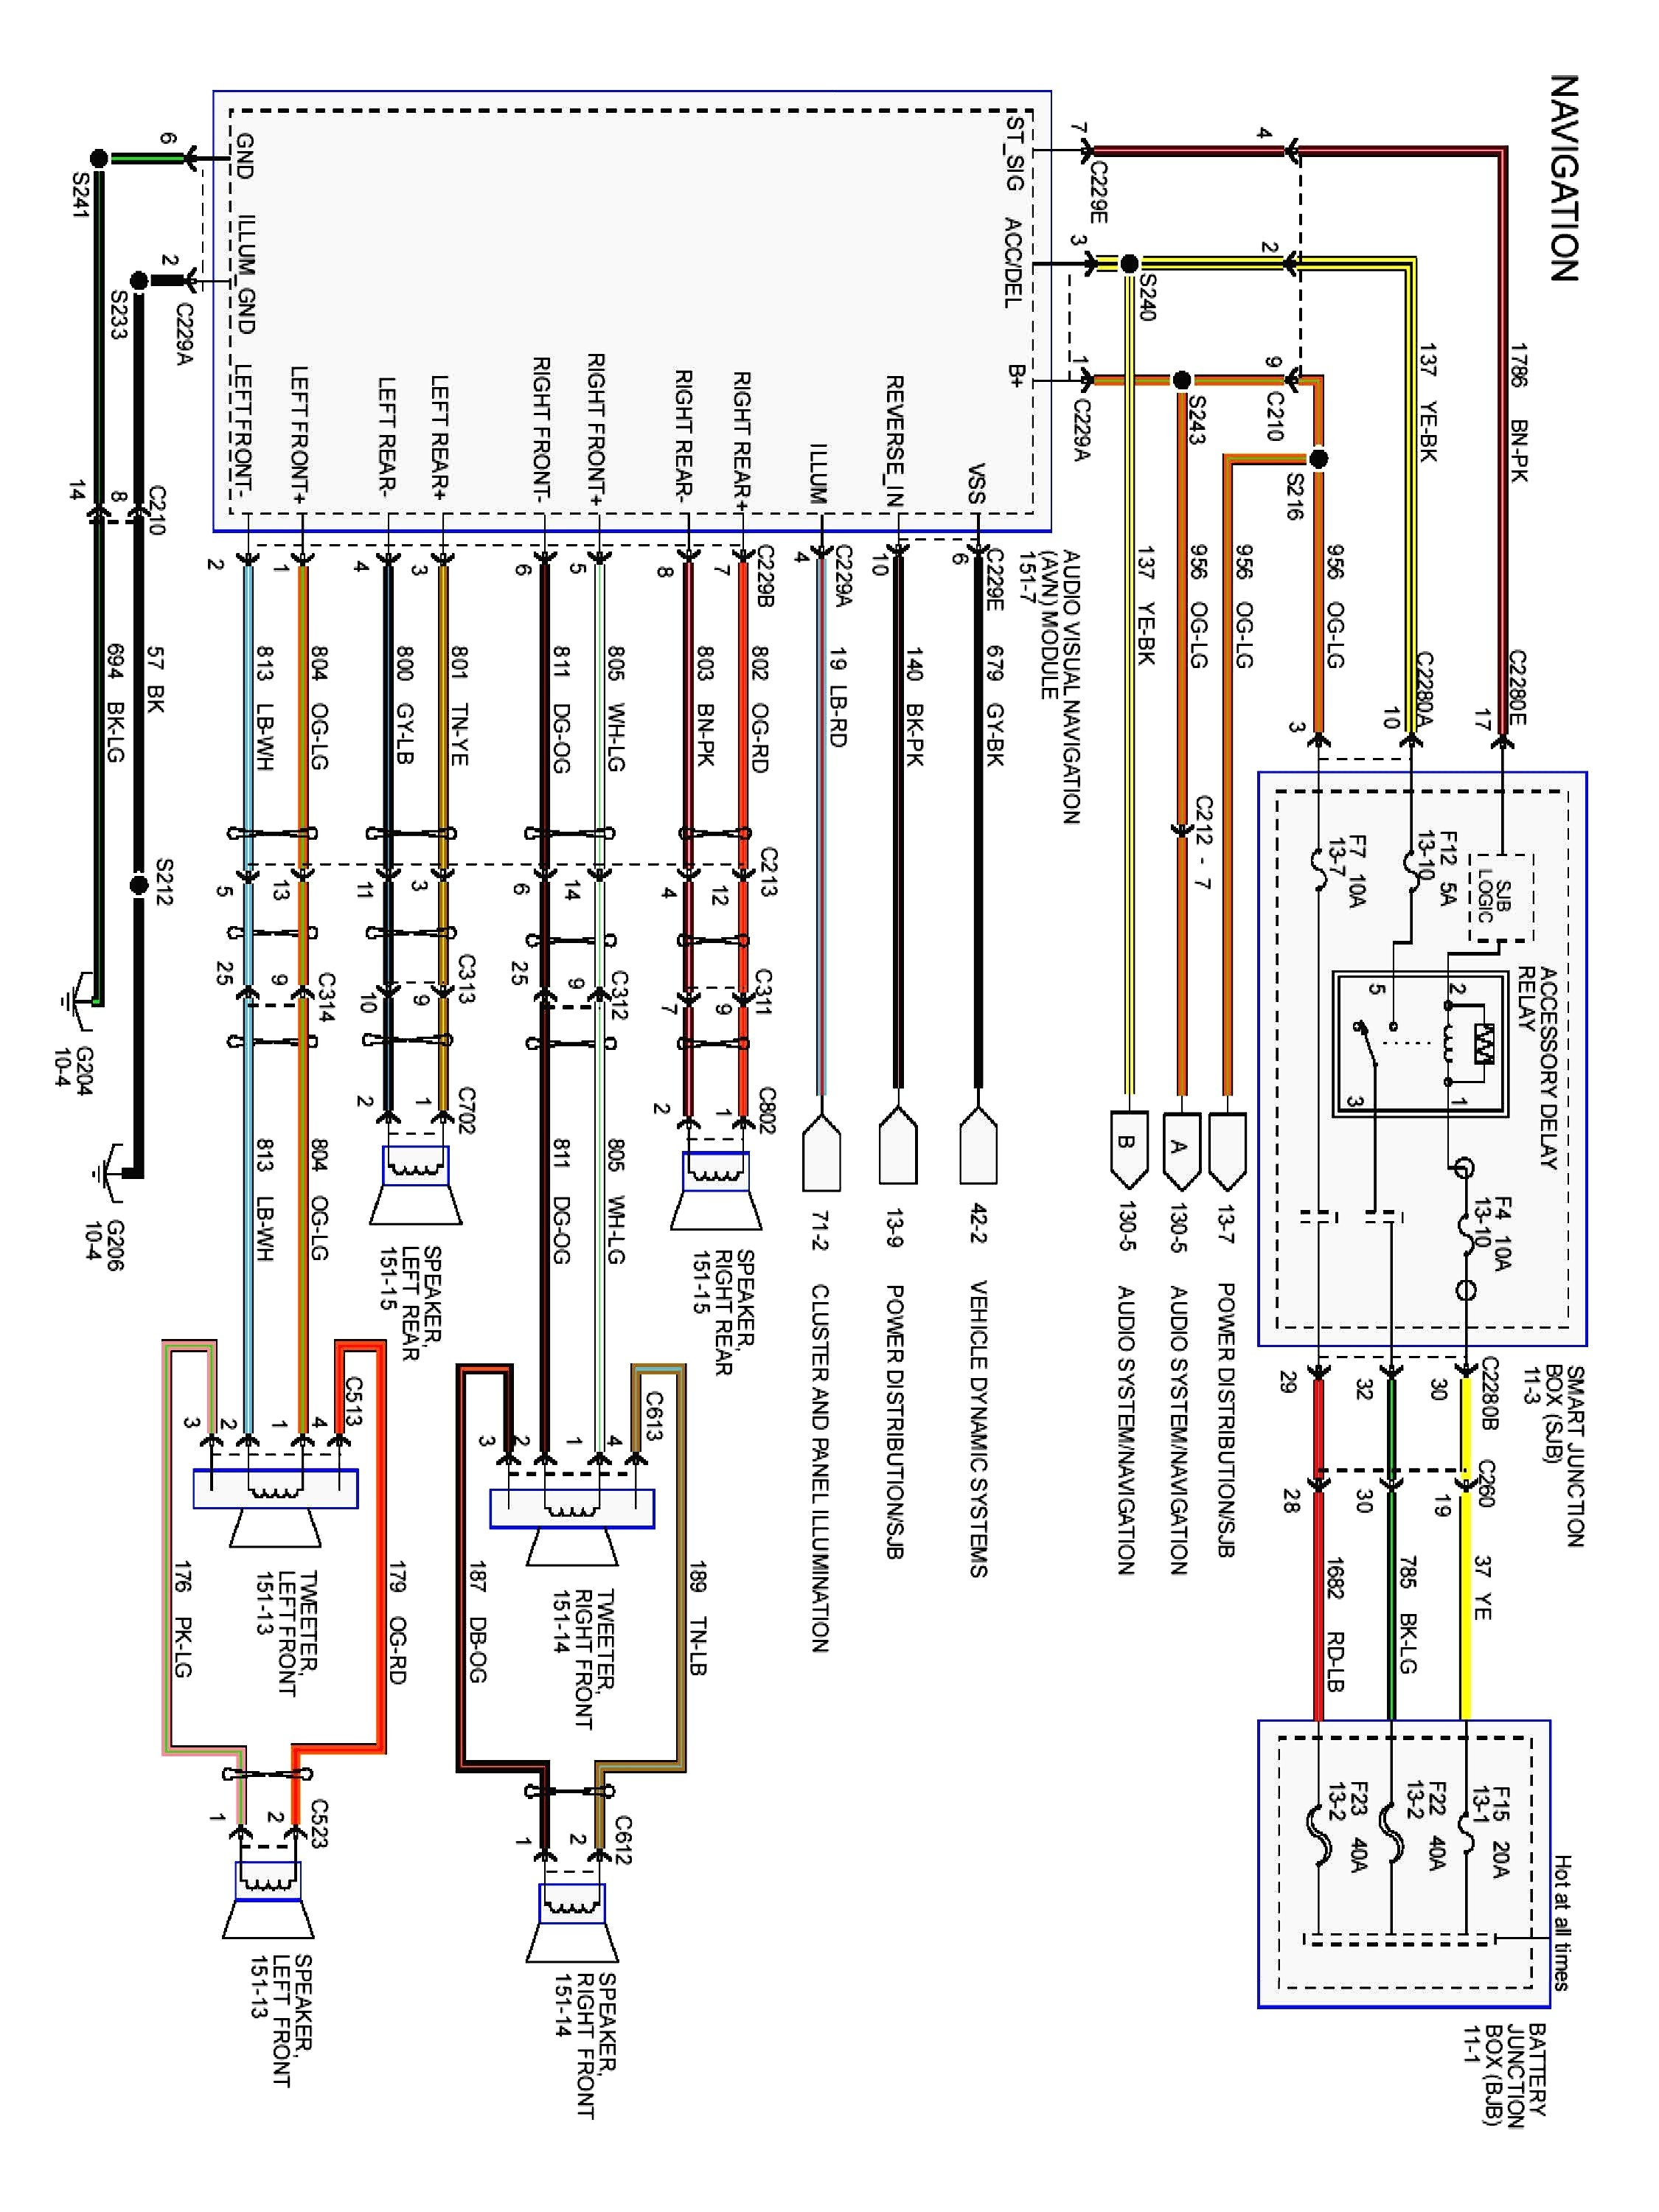 2003 ford e350 wiring diagram | steam-timetab wiring diagram ran -  steam-timetab.rolltec-automotive.eu  rolltec-automotive.eu